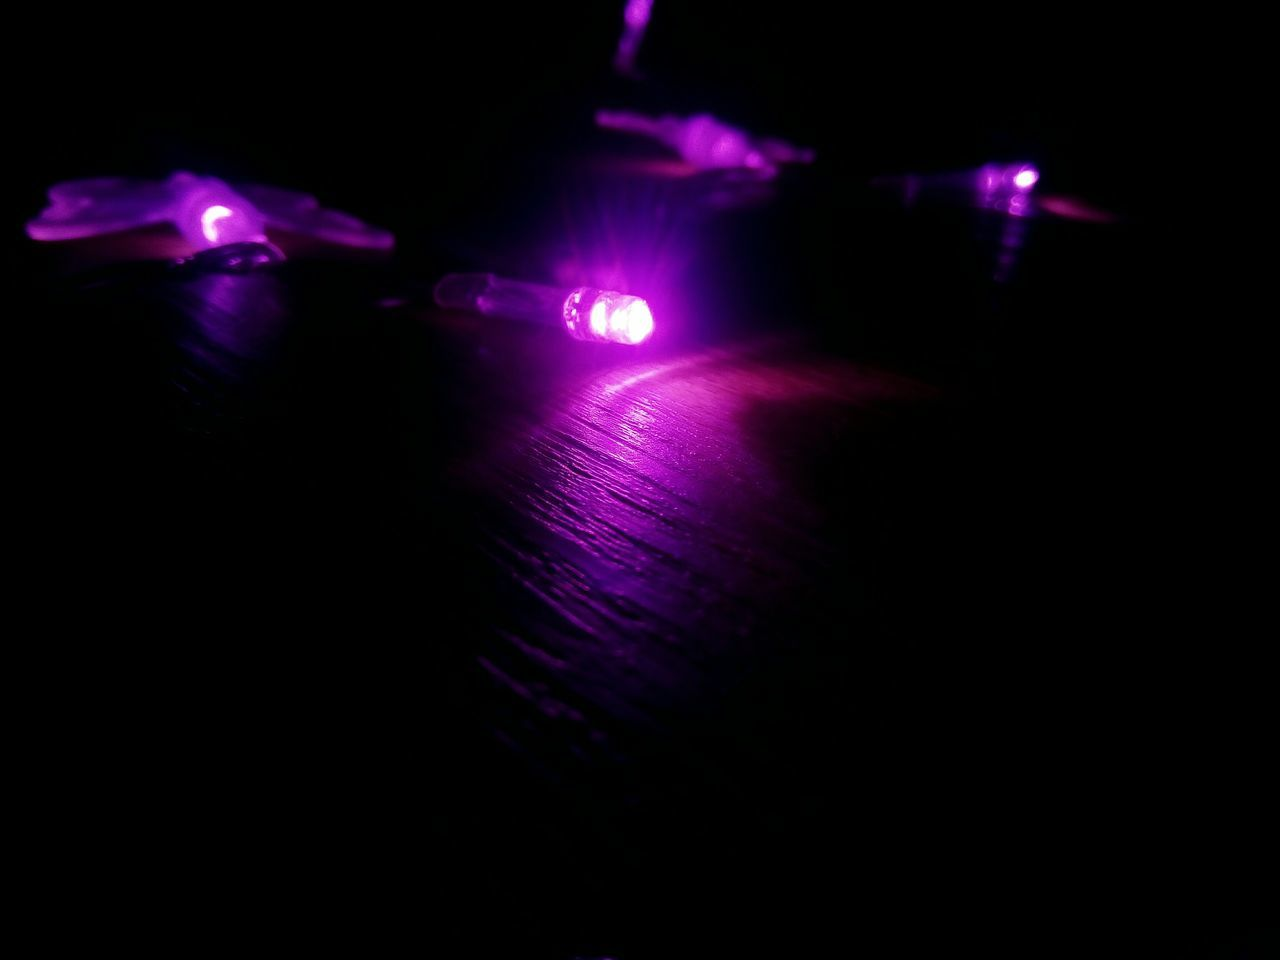 Nightlife Purple Spotlight No People Indoors  Night Shadows Asthetic Neon Pink Grains Wood Uniqueness Butterfly Childhood Fairy Lights Light Close-up Adapted To The City Wooden Flooring Urban Reflection Wall Black Black Background